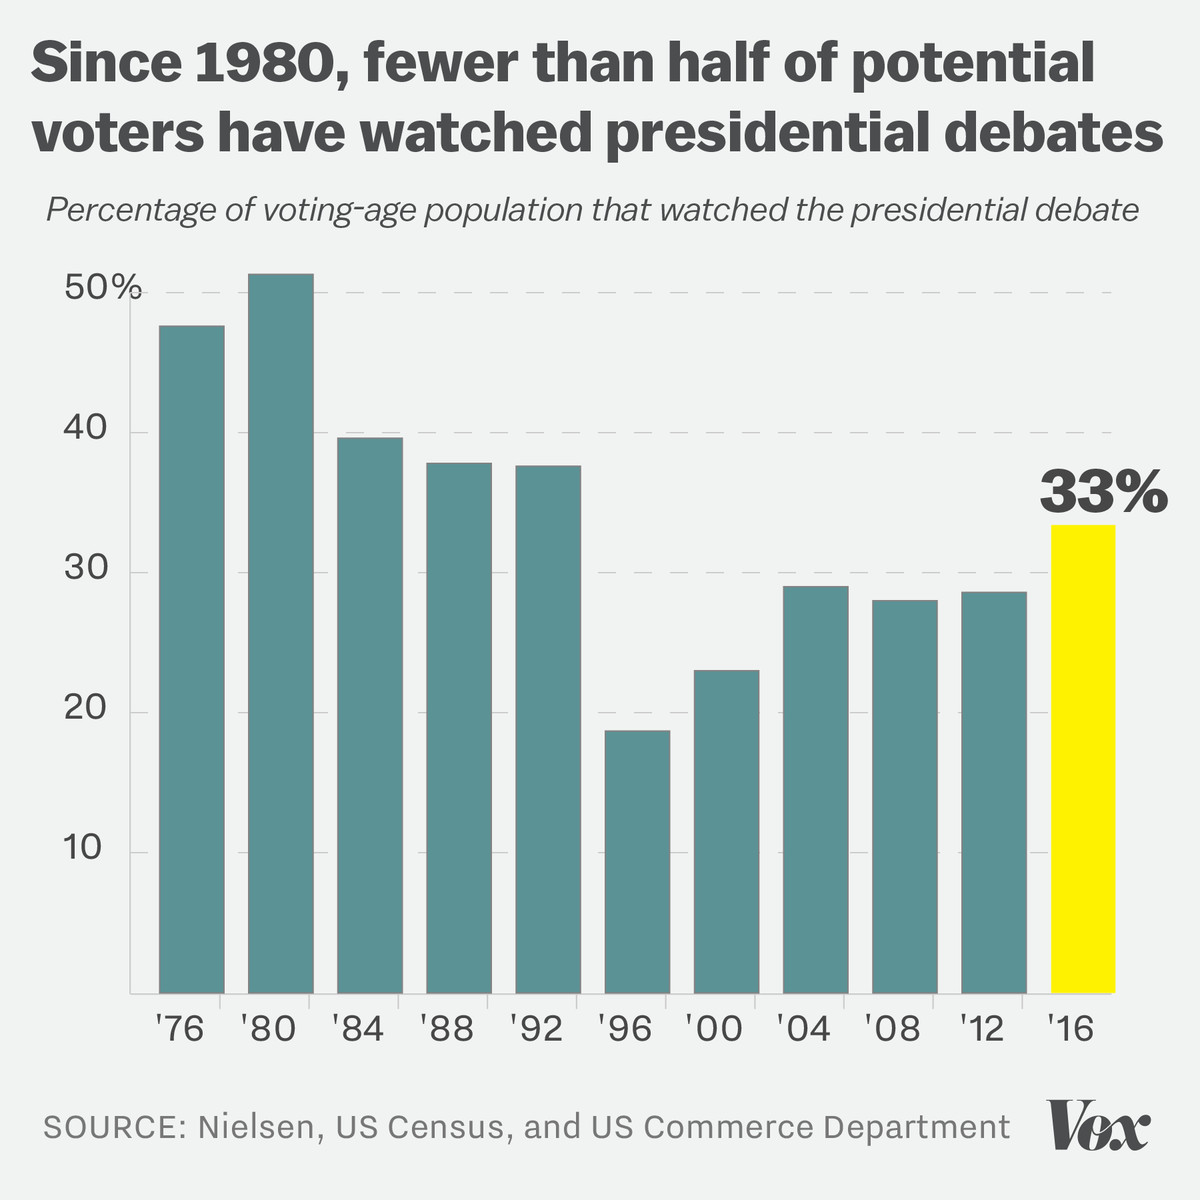 Bar chart showing the percentage of the population of voting age who have watched presidential debates since 1980.